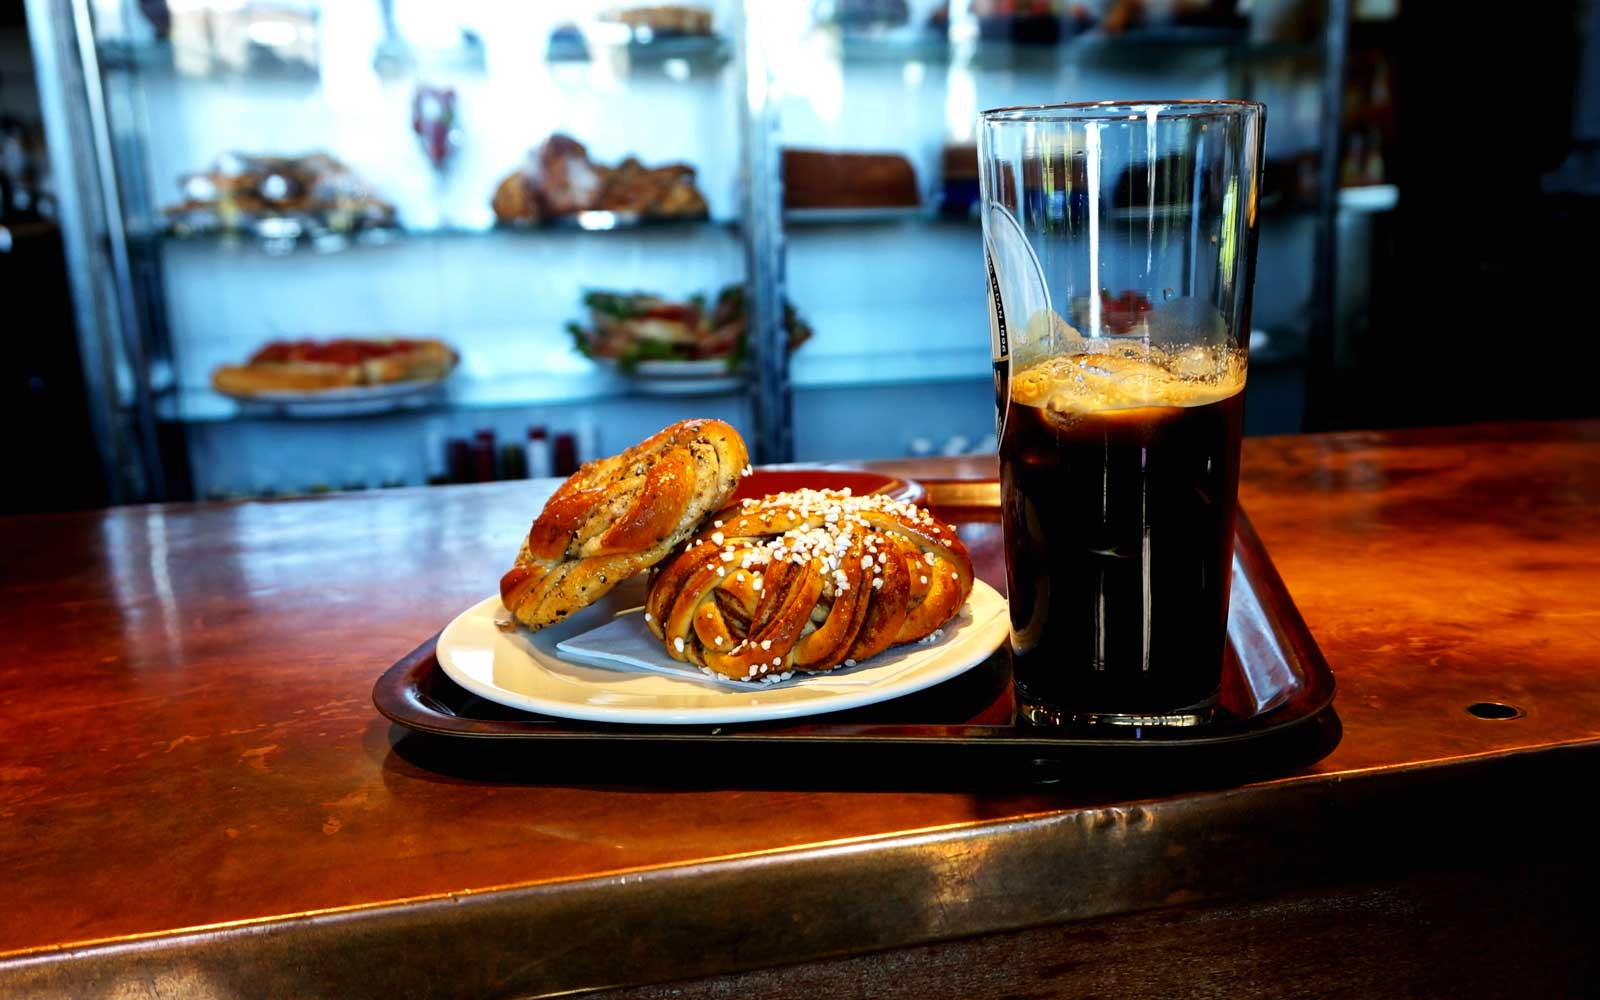 Cinnamon Buns And Black Coffee on a Cafe Counter in Stockholm